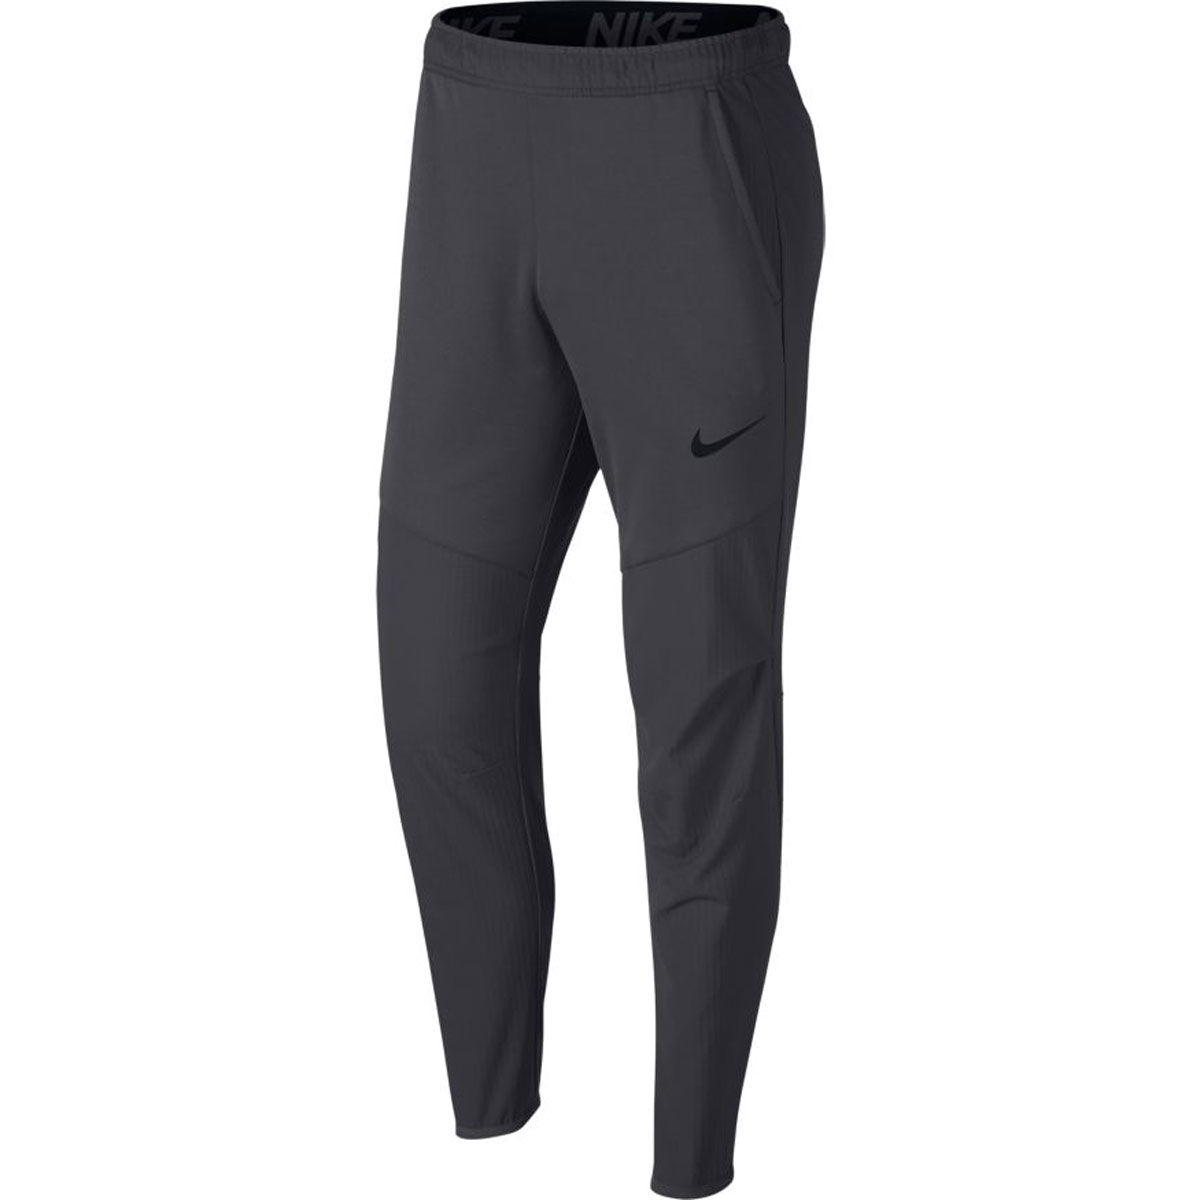 Nike Dry Warmup Mens Training Pant